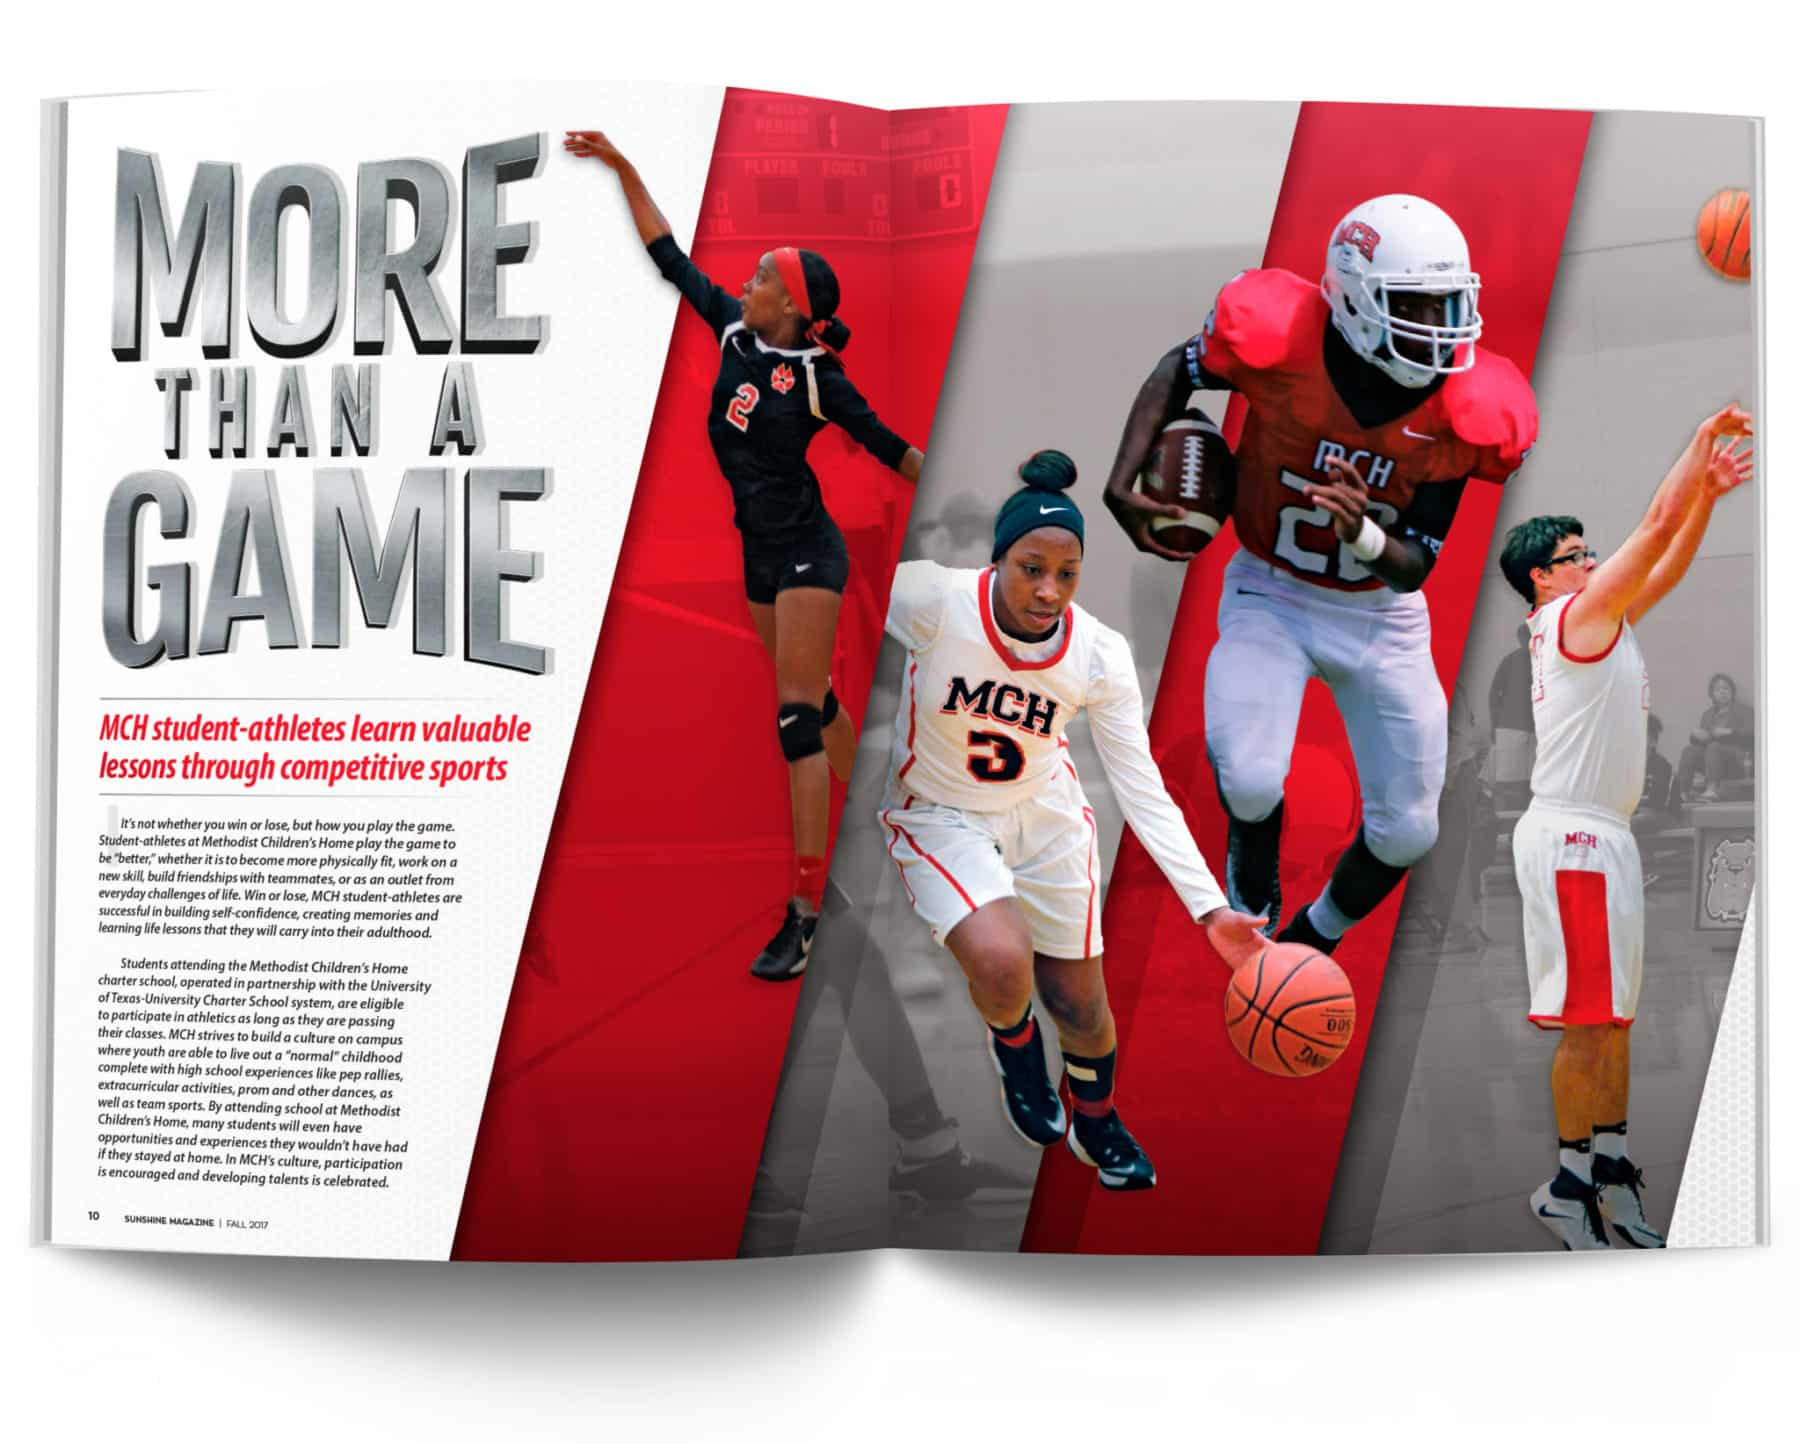 Magazine Spread - More than a Game